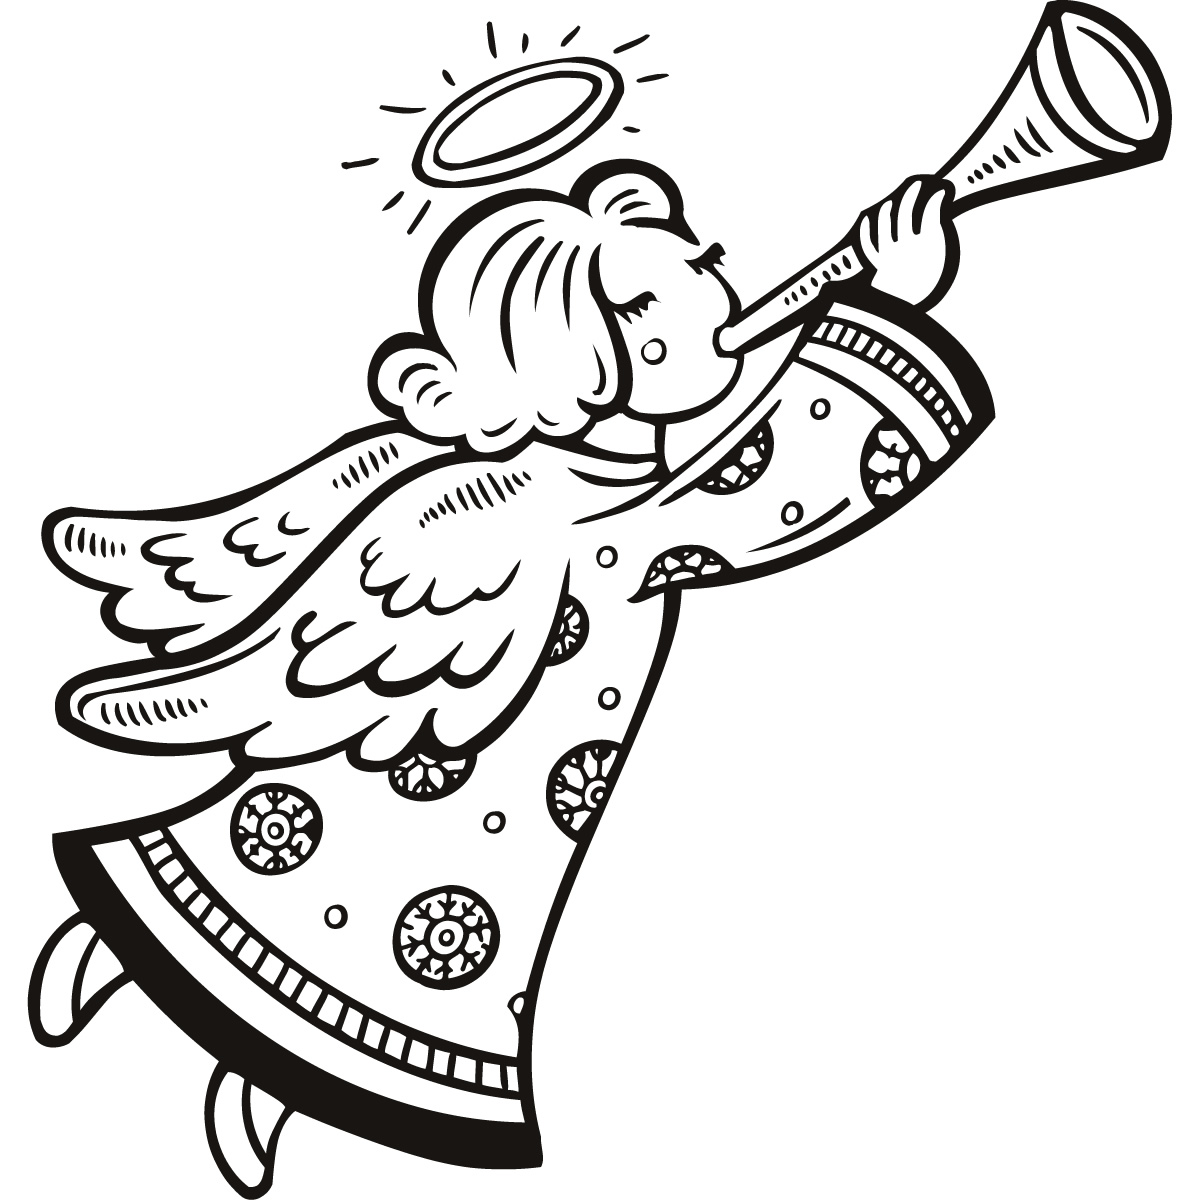 Angel clipart drawing banner freeuse Free Angel Line Drawing, Download Free Clip Art, Free Clip Art on ... banner freeuse